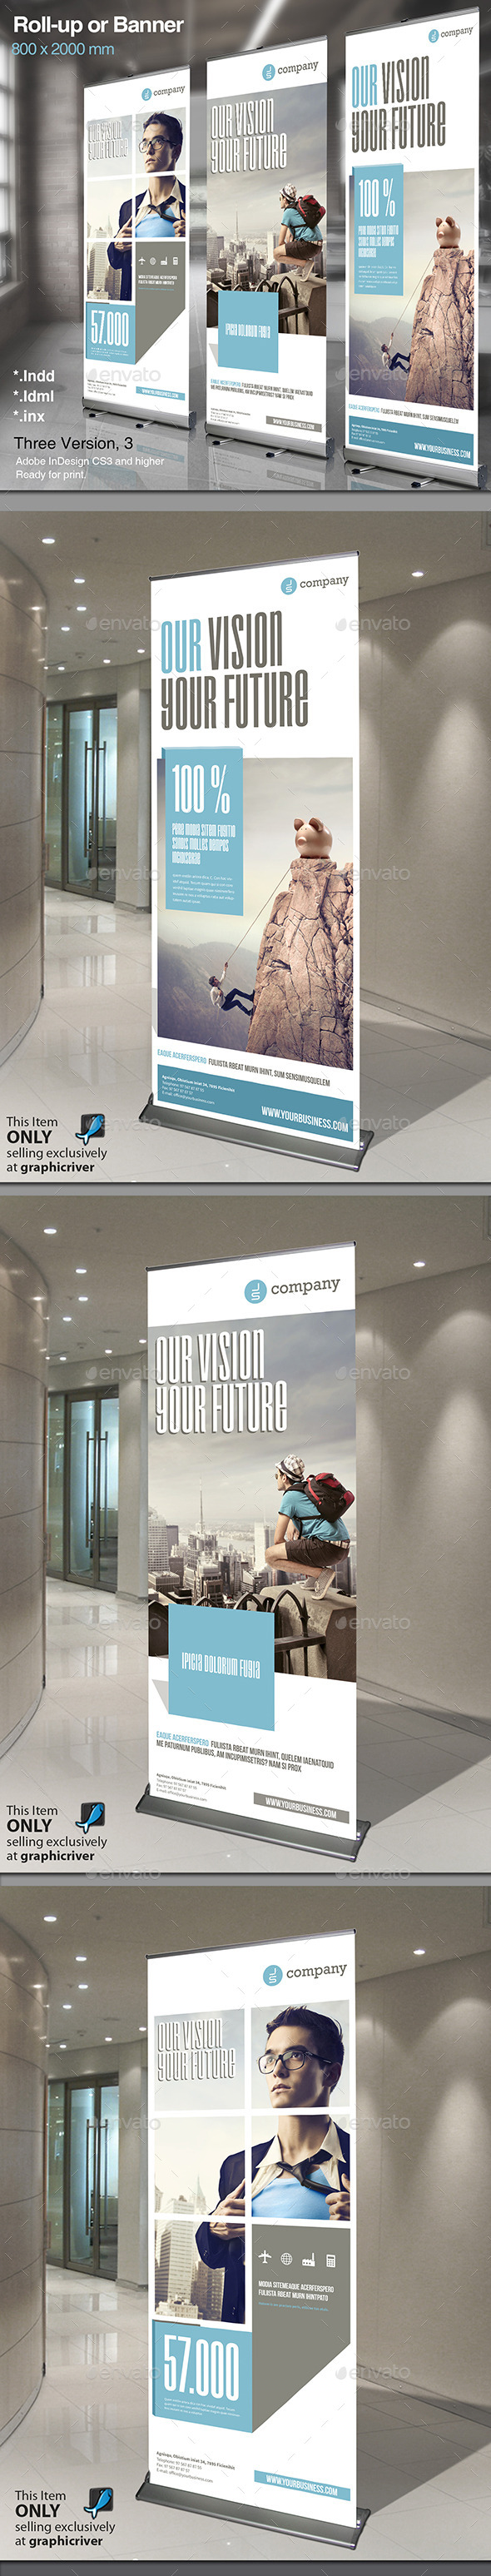 Corporate Roll-up or Banner Vol. 2 - Signage Print Templates